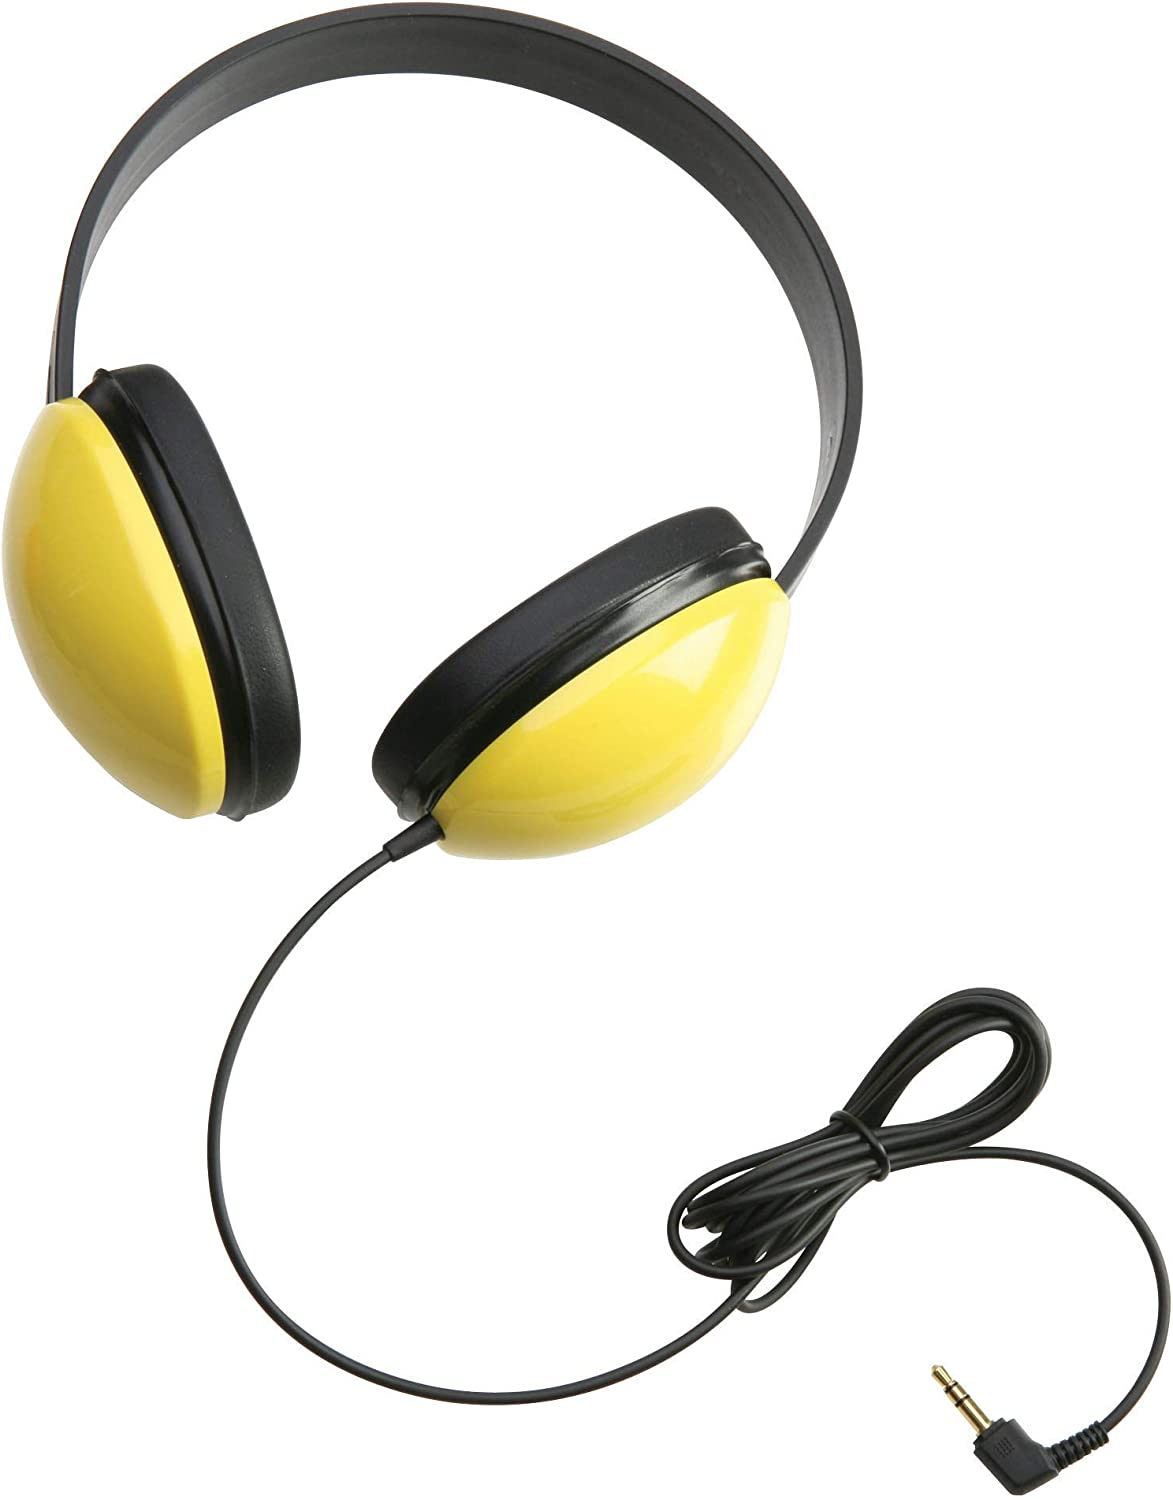 Califone Stereo Headphones for podcast listening is the yellow colour headphones for the podcast listening and also used for the gaming